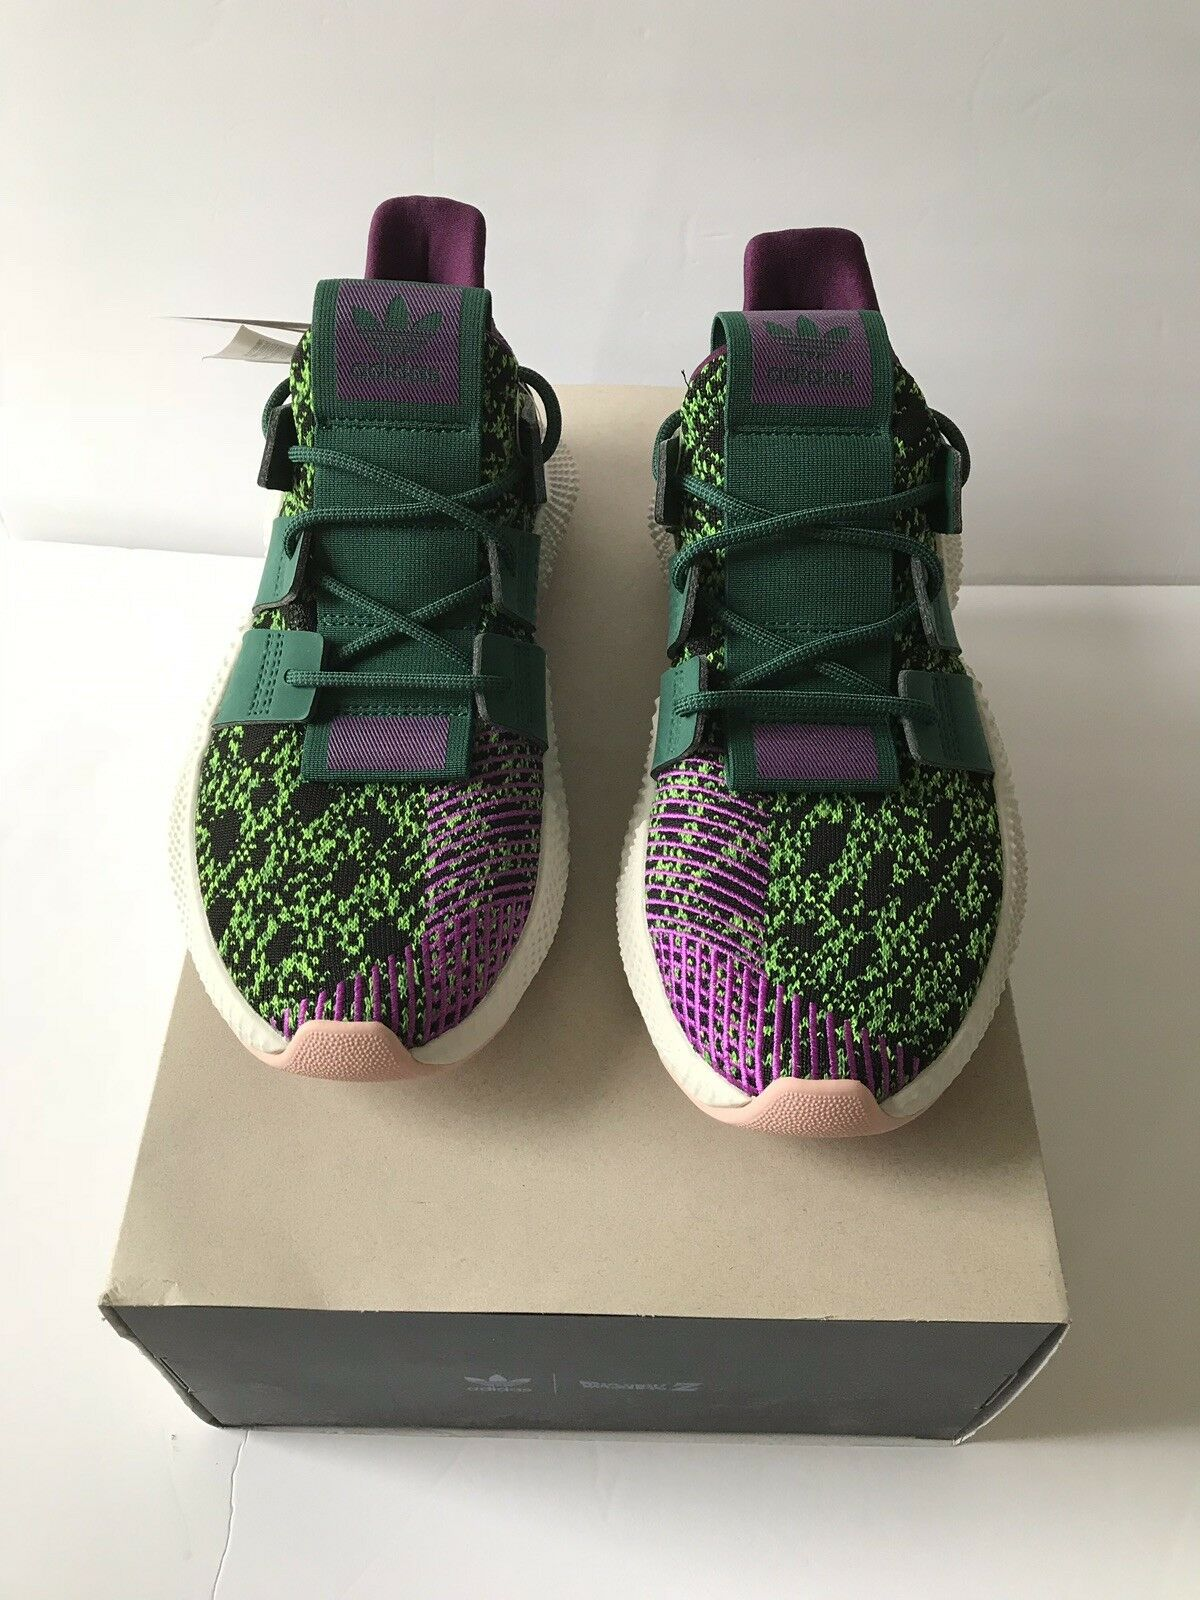 Adidas Prophere Dragon Ball Z Cell Sneakers Size 8.5 D97053 D97053 D97053 Ships From USA 55fb24